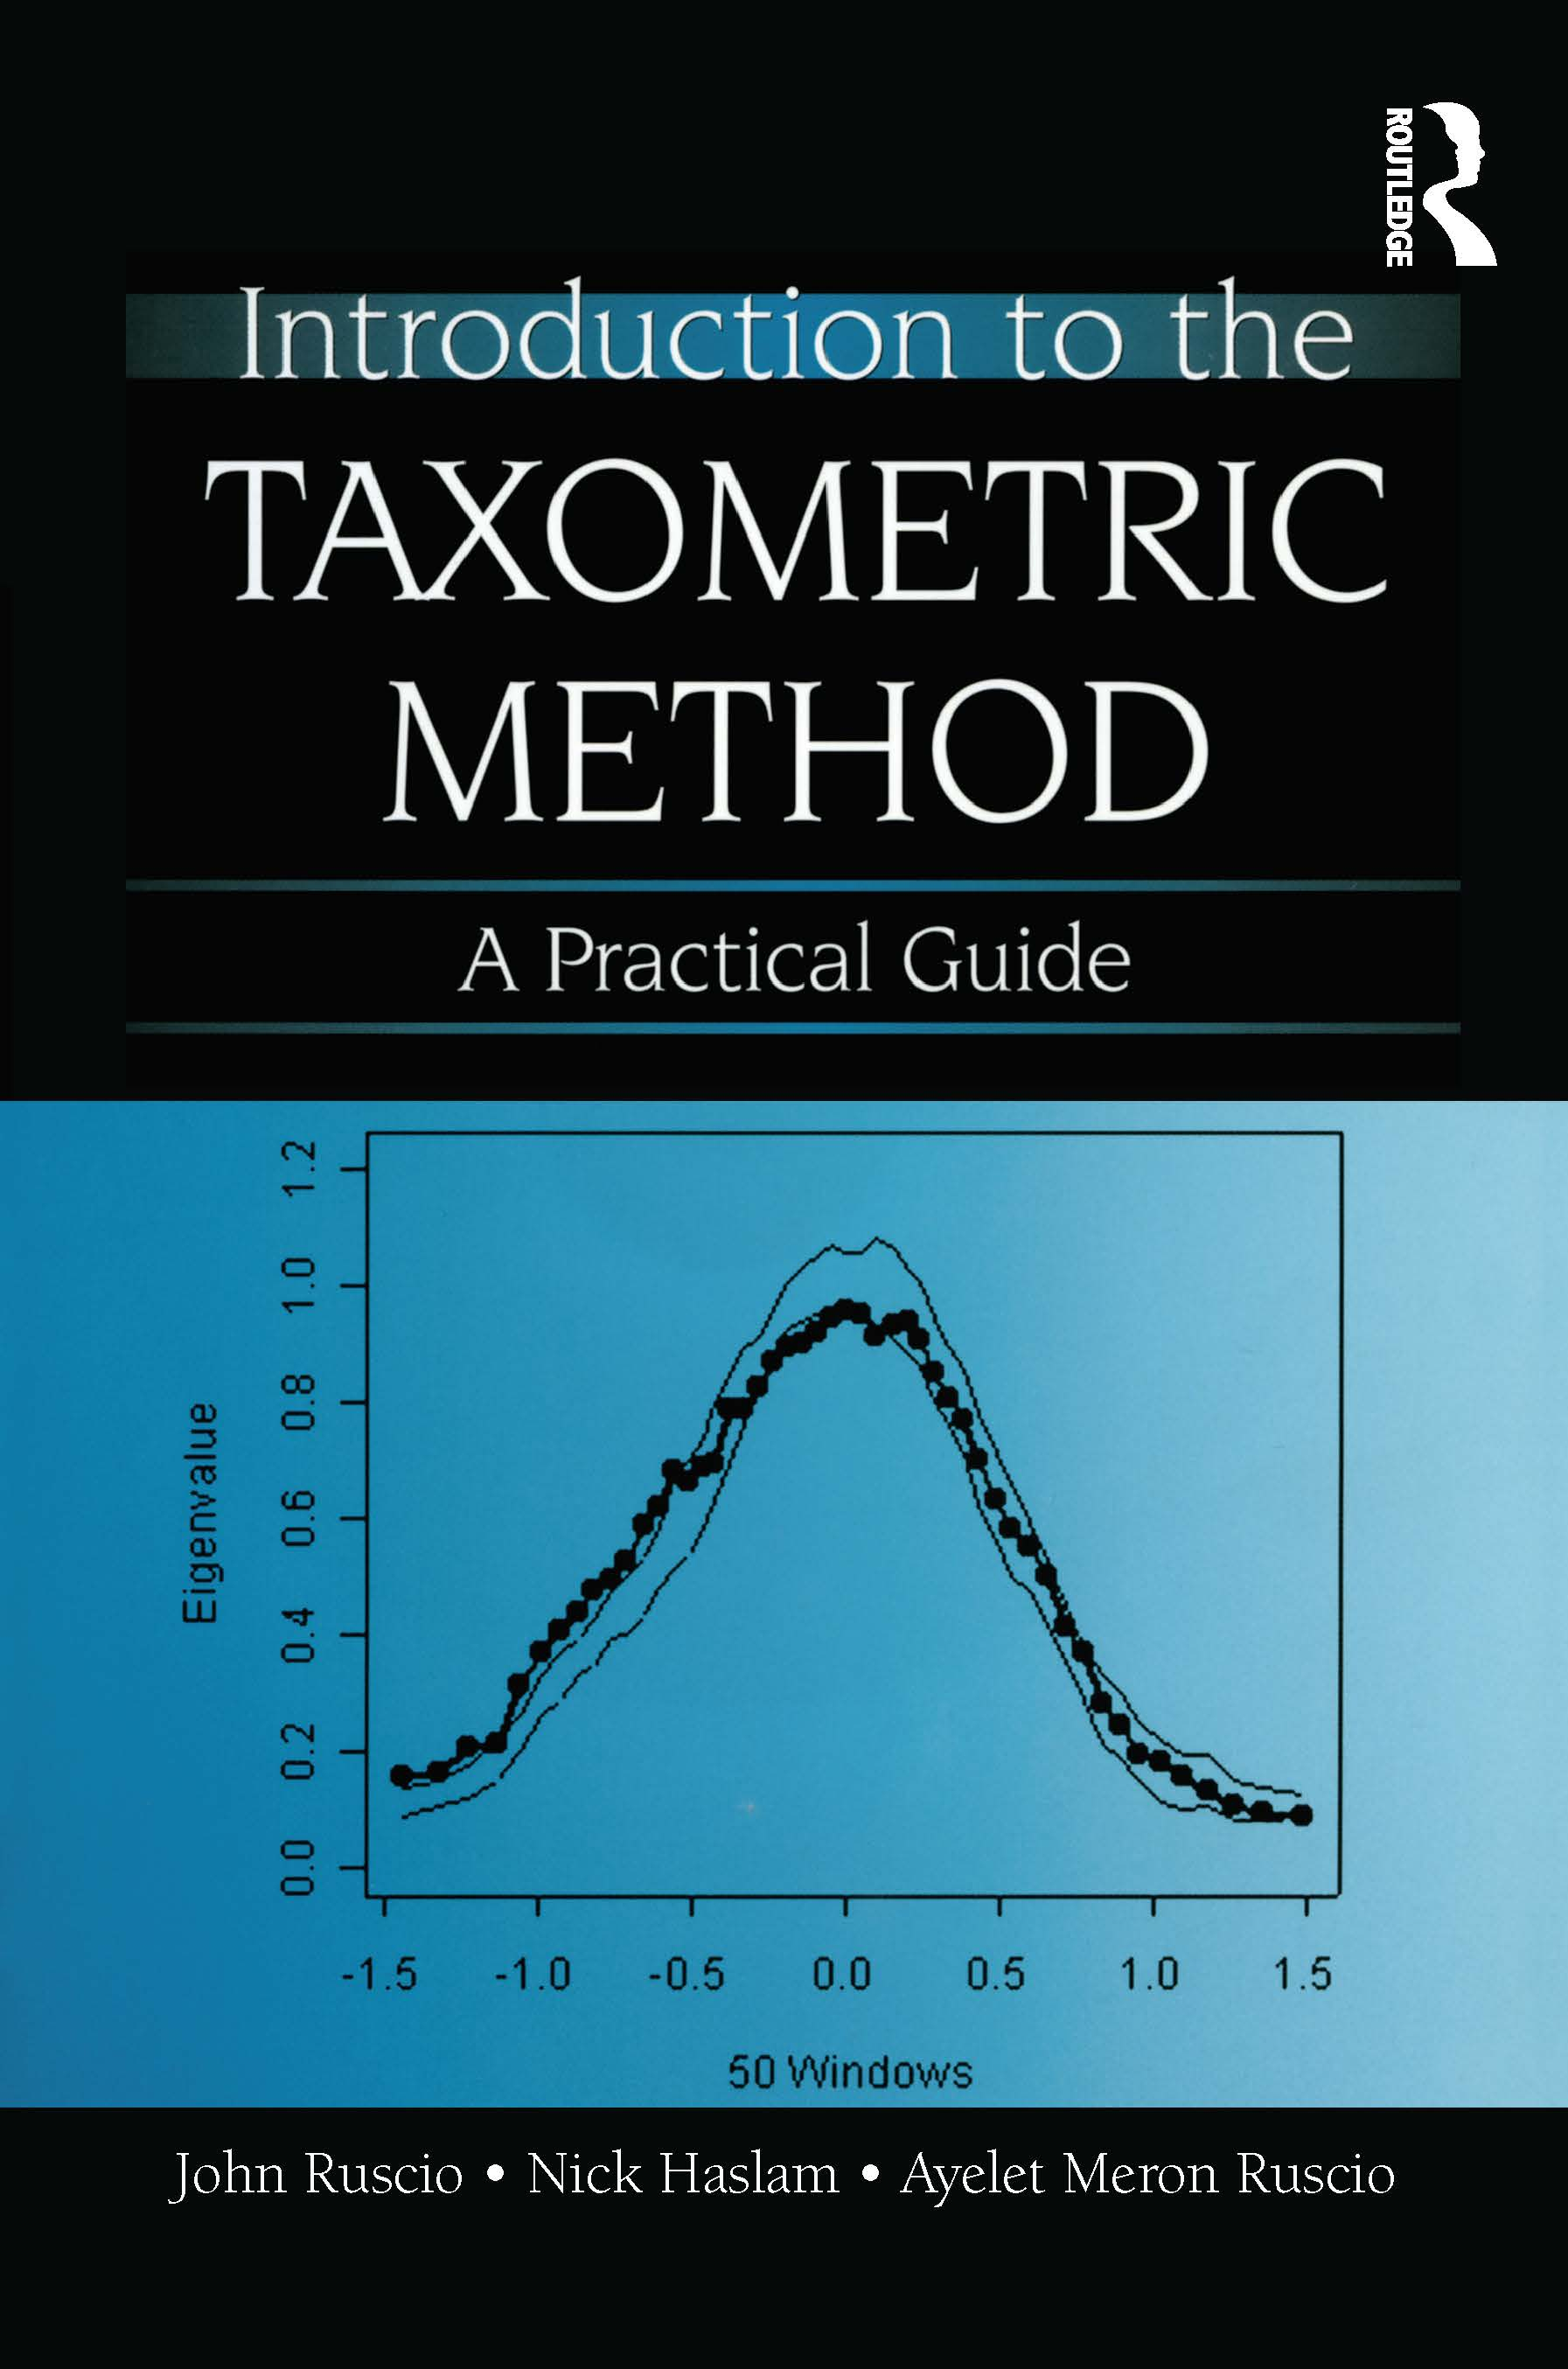 Introduction to the Taxometric Method